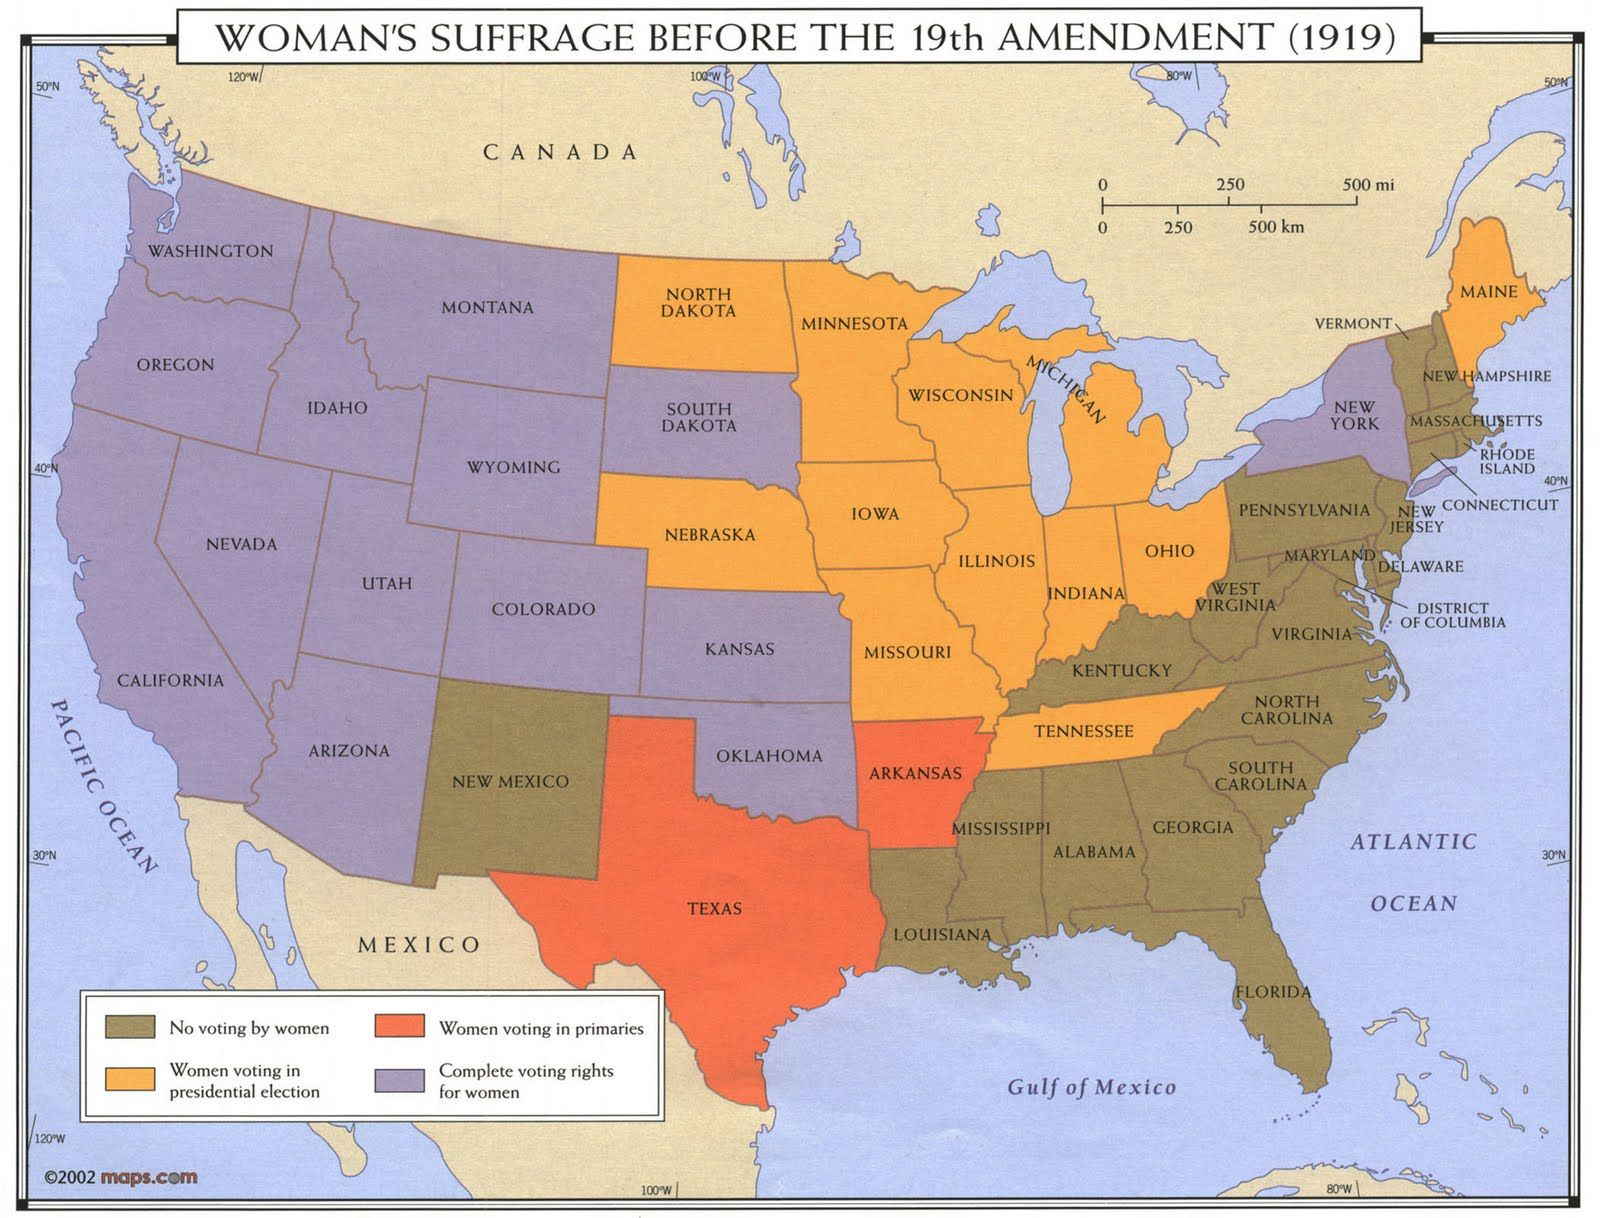 no voting rights by women gis research and map collection gis research and map collection women s suffrage